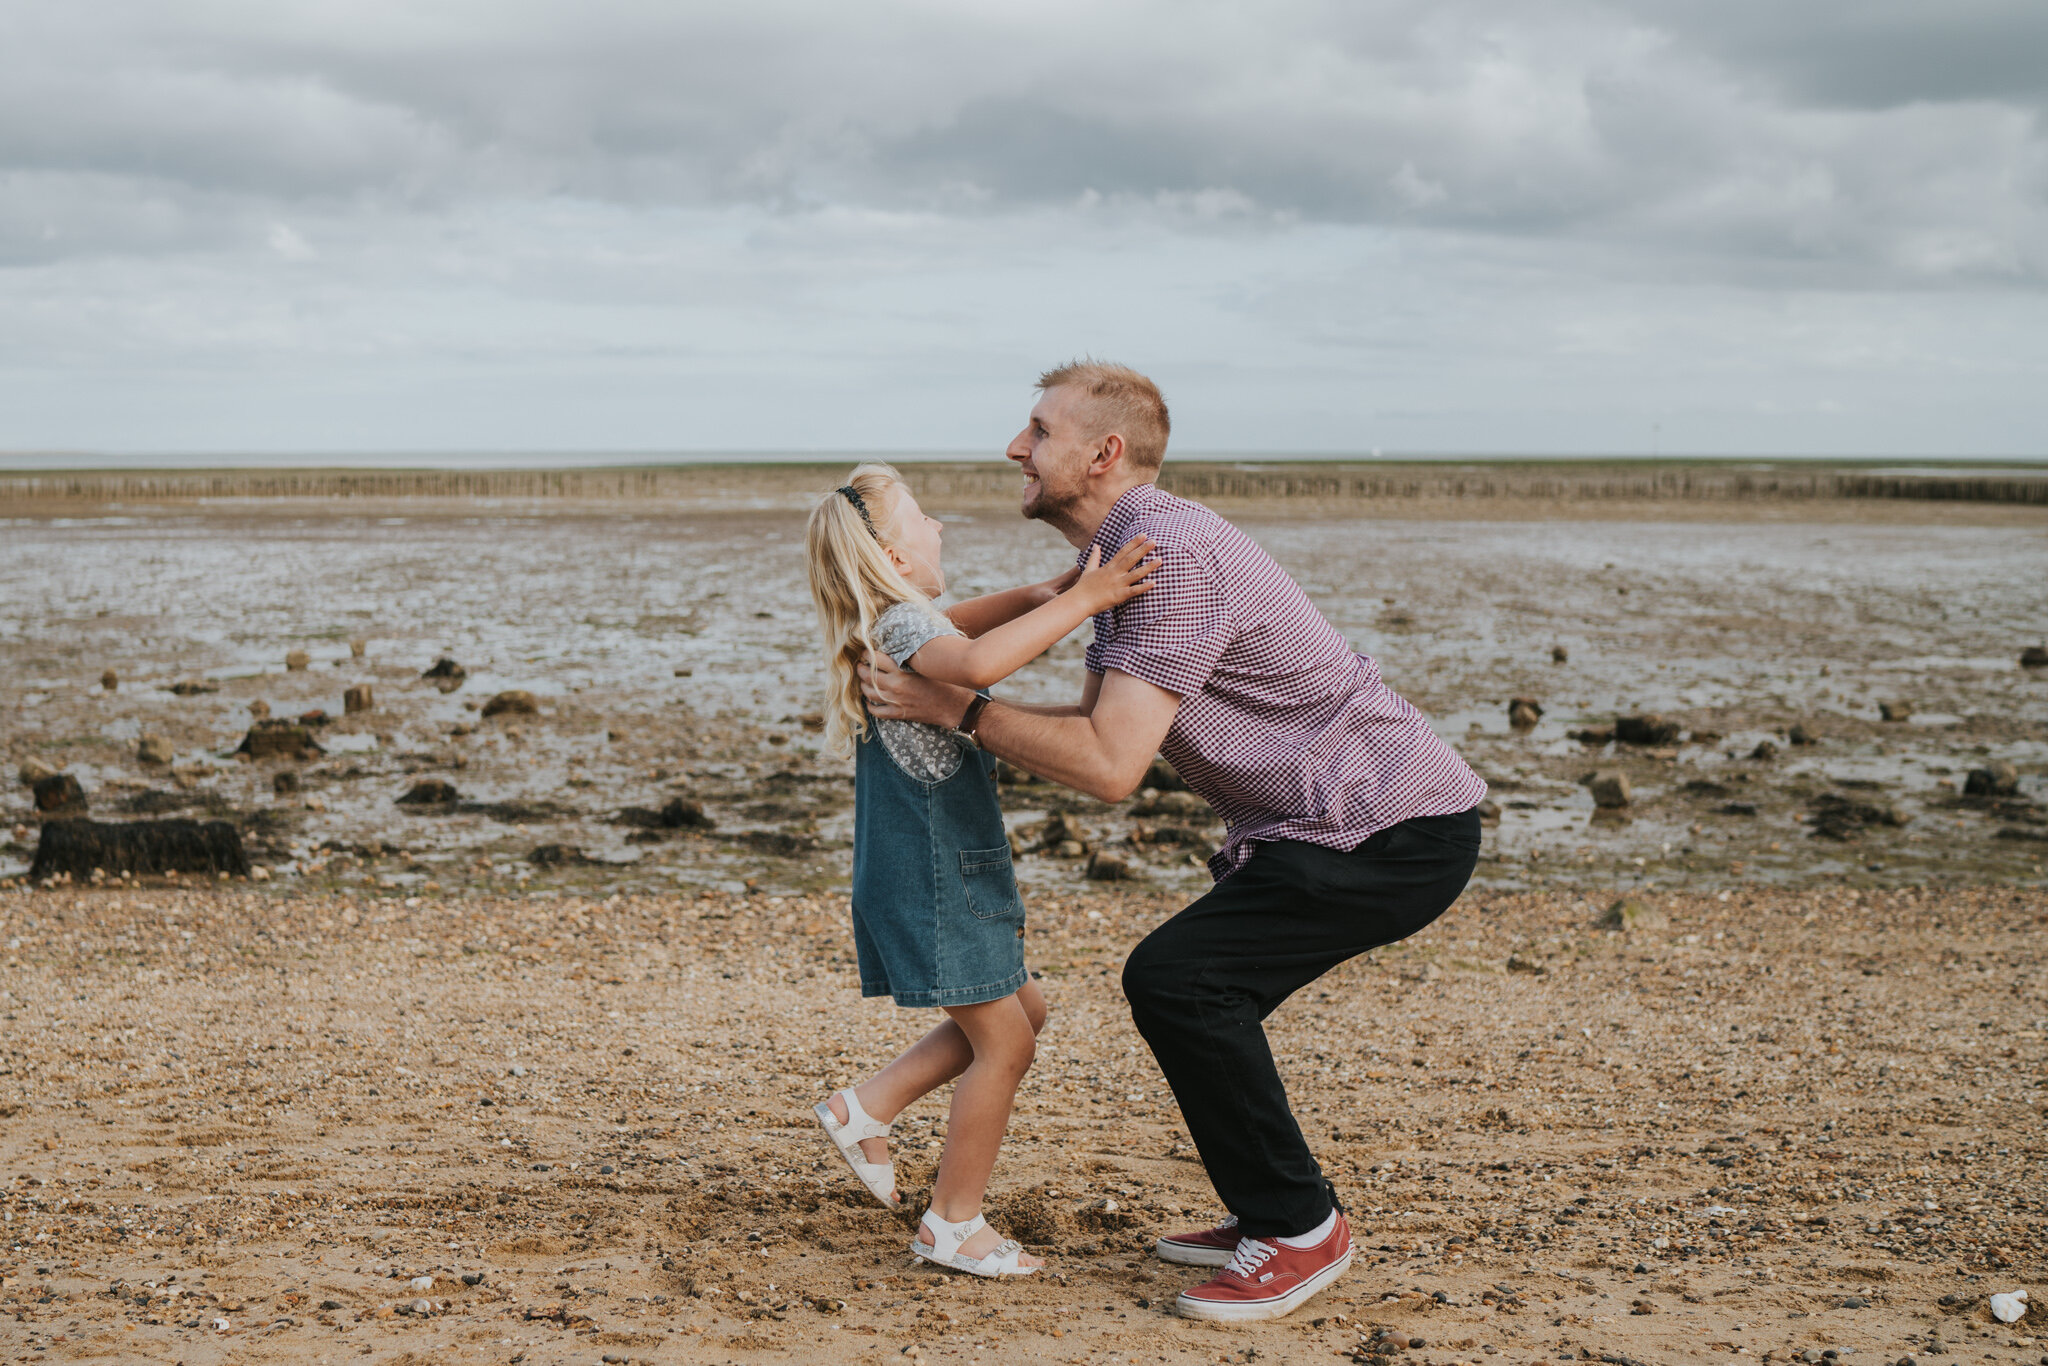 celebratory-beach-family-session-thomson-family-cudmore-grove-east-mersea-grace-elizabeth-colchester-essex-devon-suffolk-and-norfolk-alternative-wedding-and-family-photographer (27 of 53).jpg